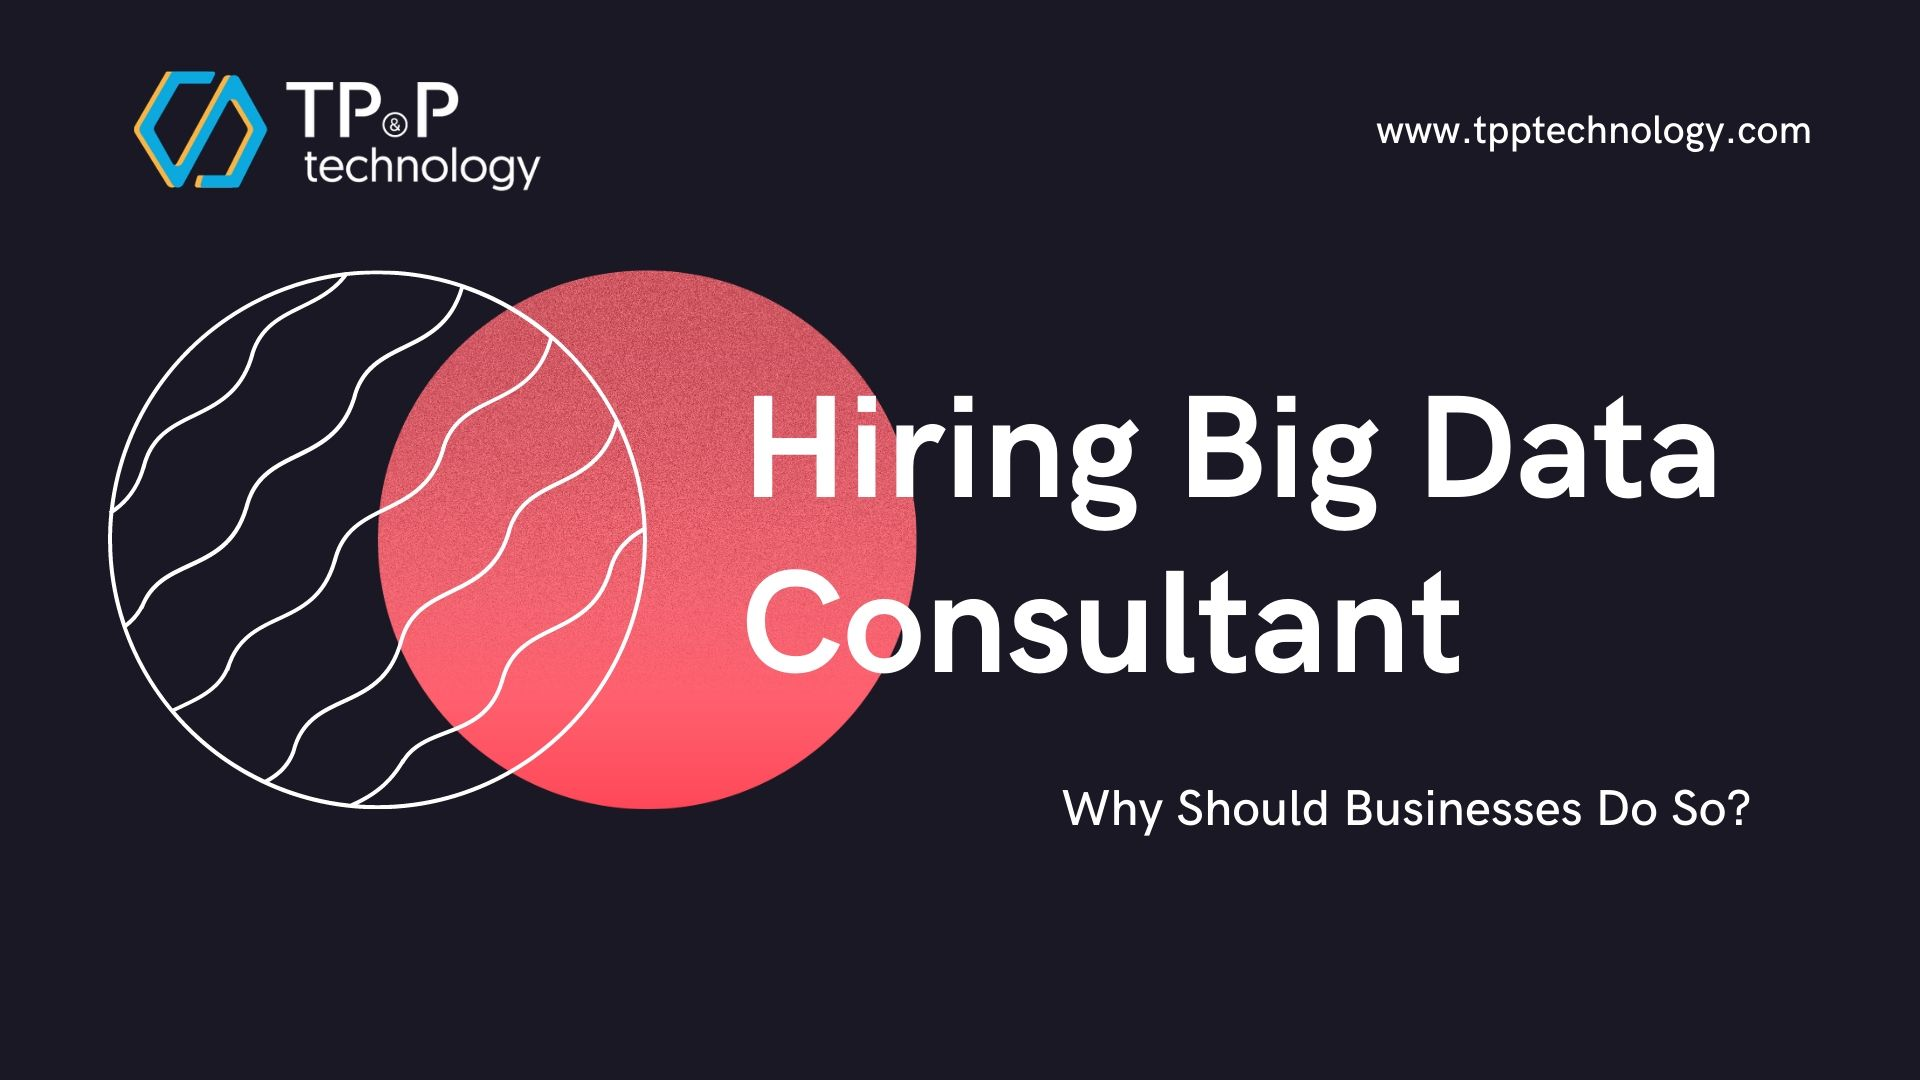 Hiring Big Data Consultant: Why Should Businesses Do So?